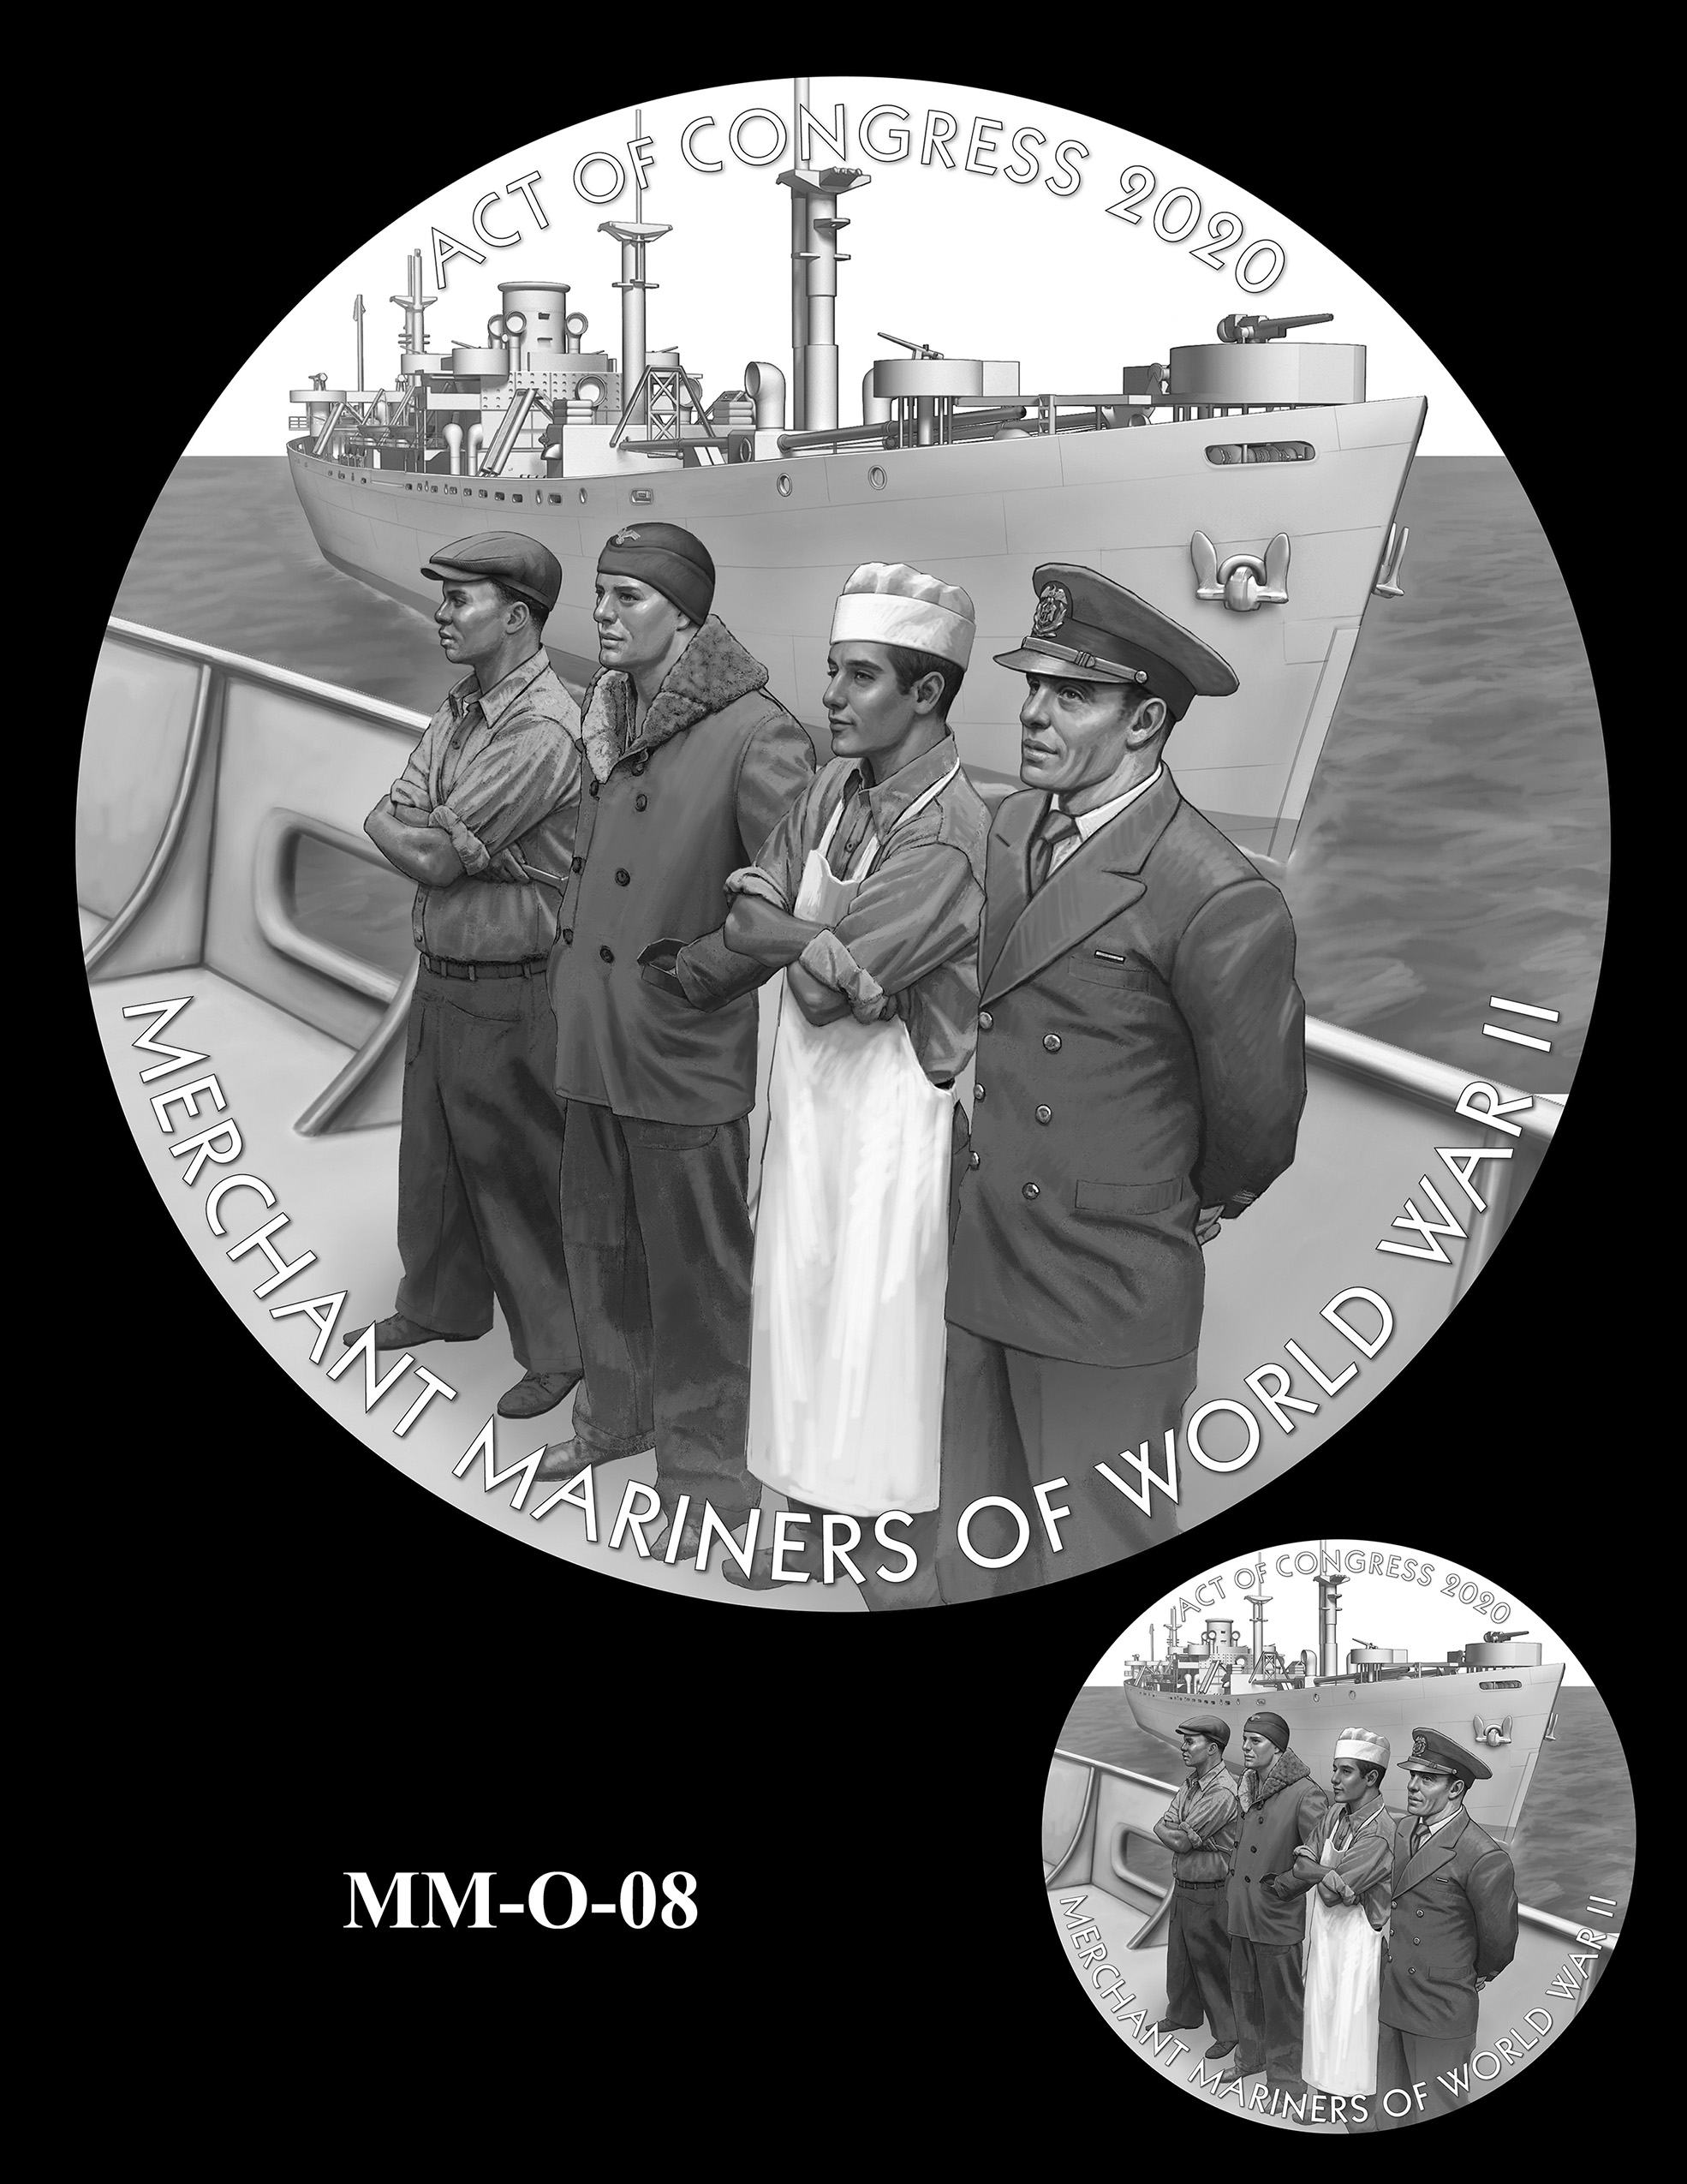 MM-O-08 -- Merchant Mariners of World War II Congressional Gold Medal